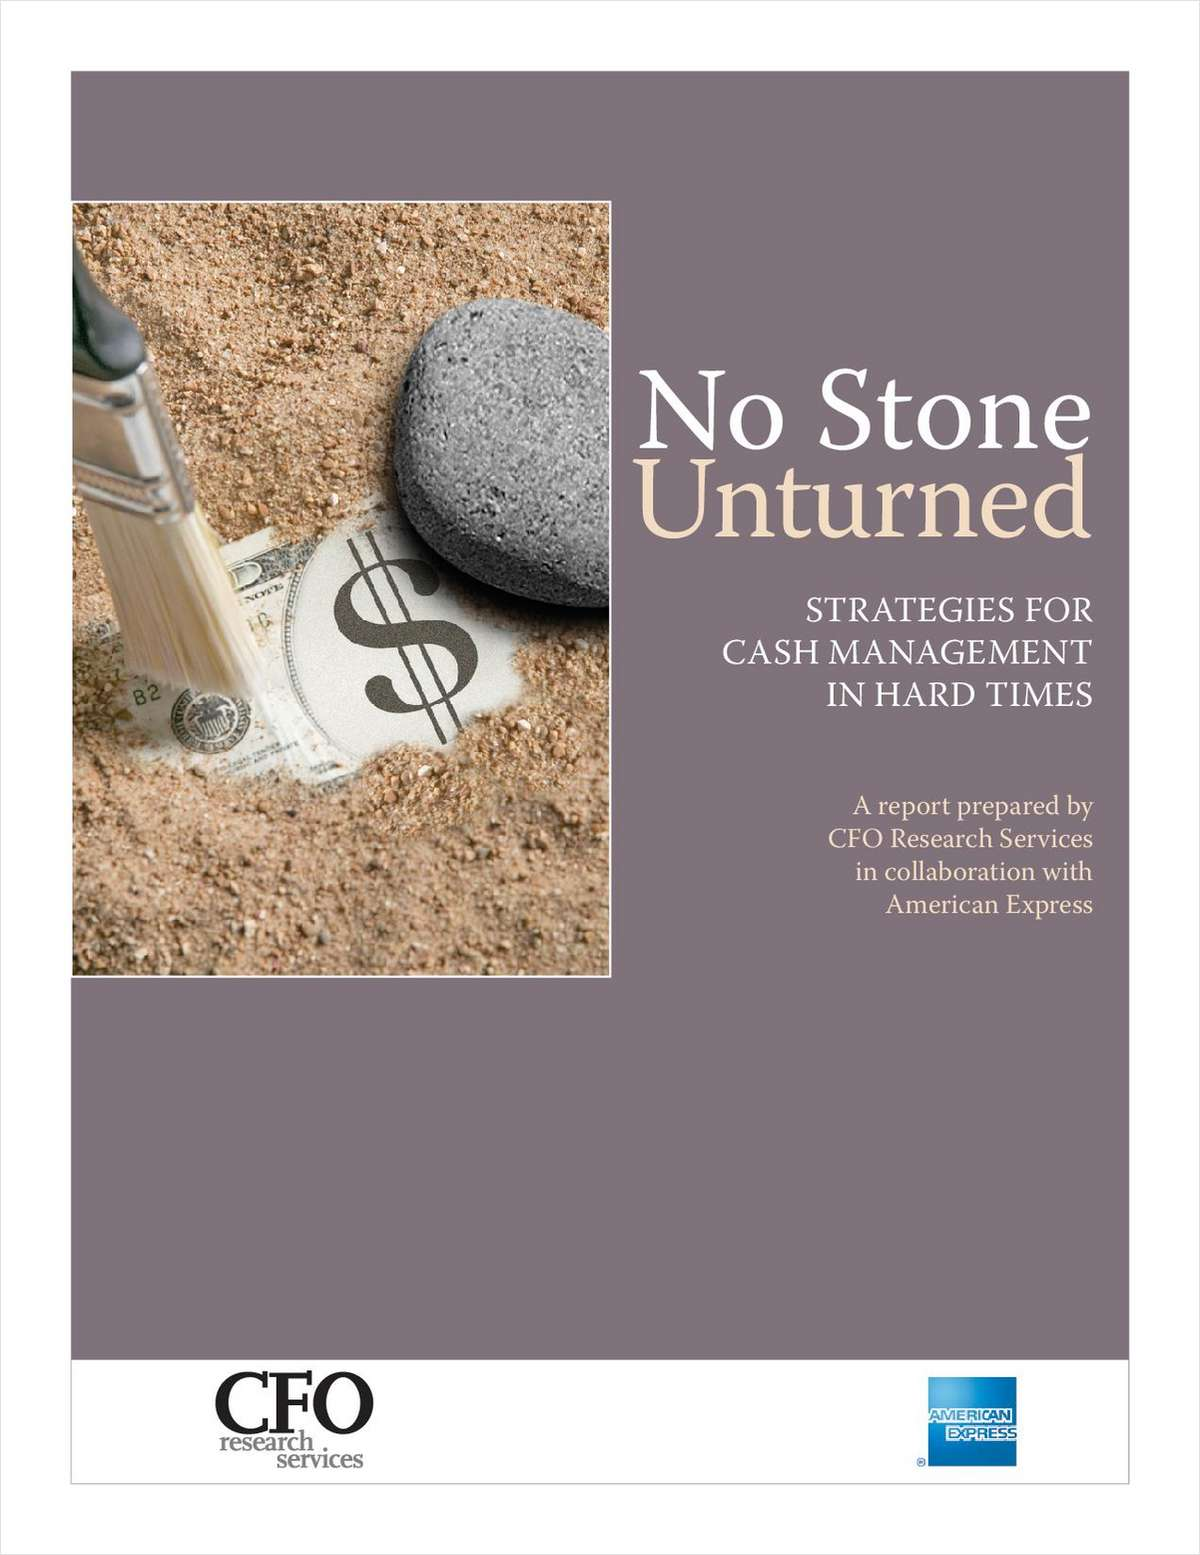 Are You Leaving No Stone Unturned?